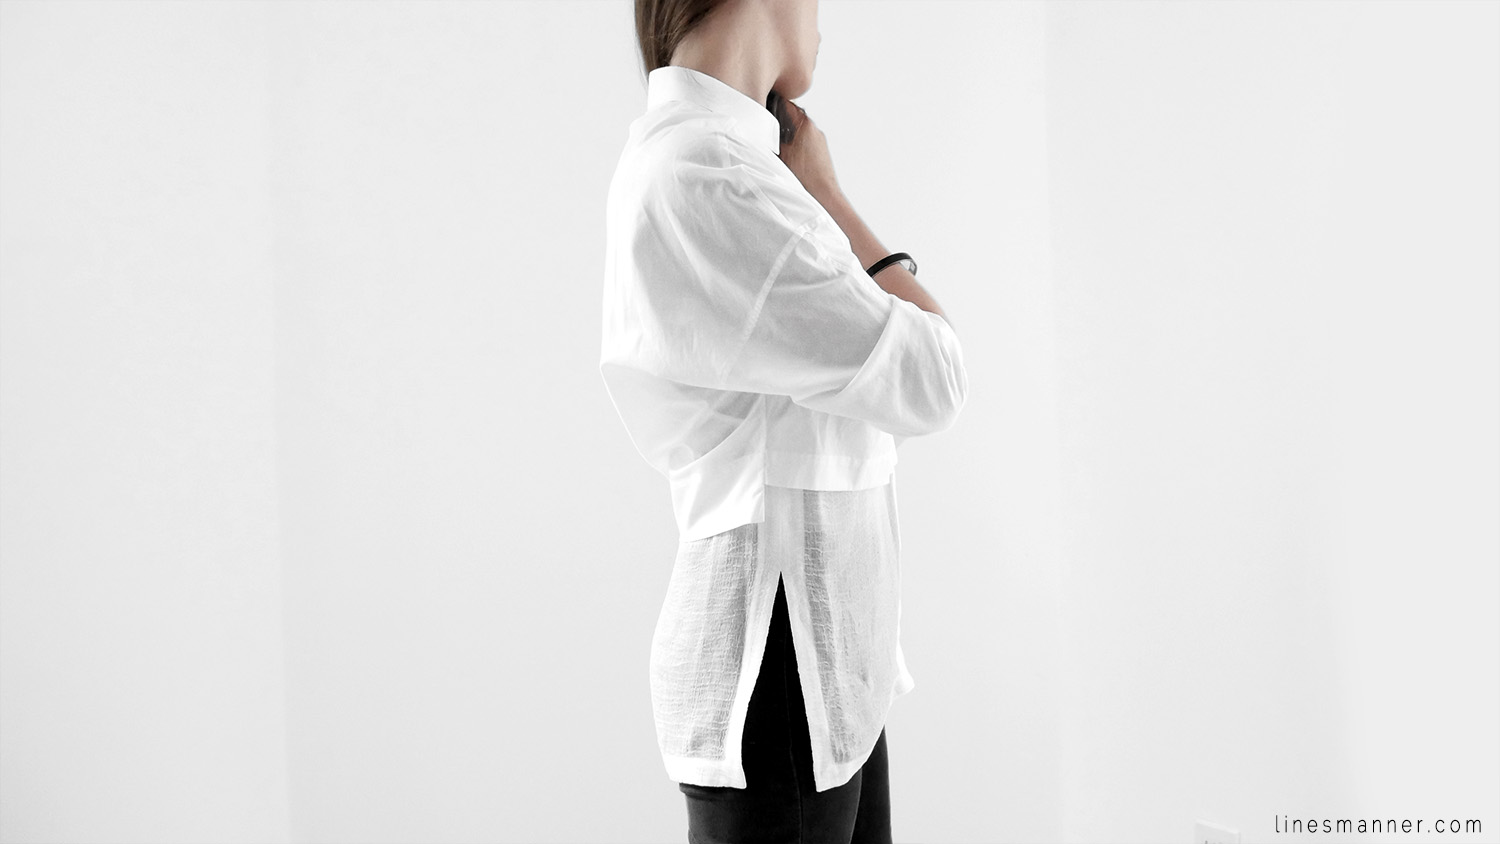 Lines-Manner-Remind-2015-Minimal-Essential-Outfit-Inspiration-Blog-Timeless-Year-Seasons-Details-Travel-Fashion-Versatile-Clean-Sleek-Quality-61